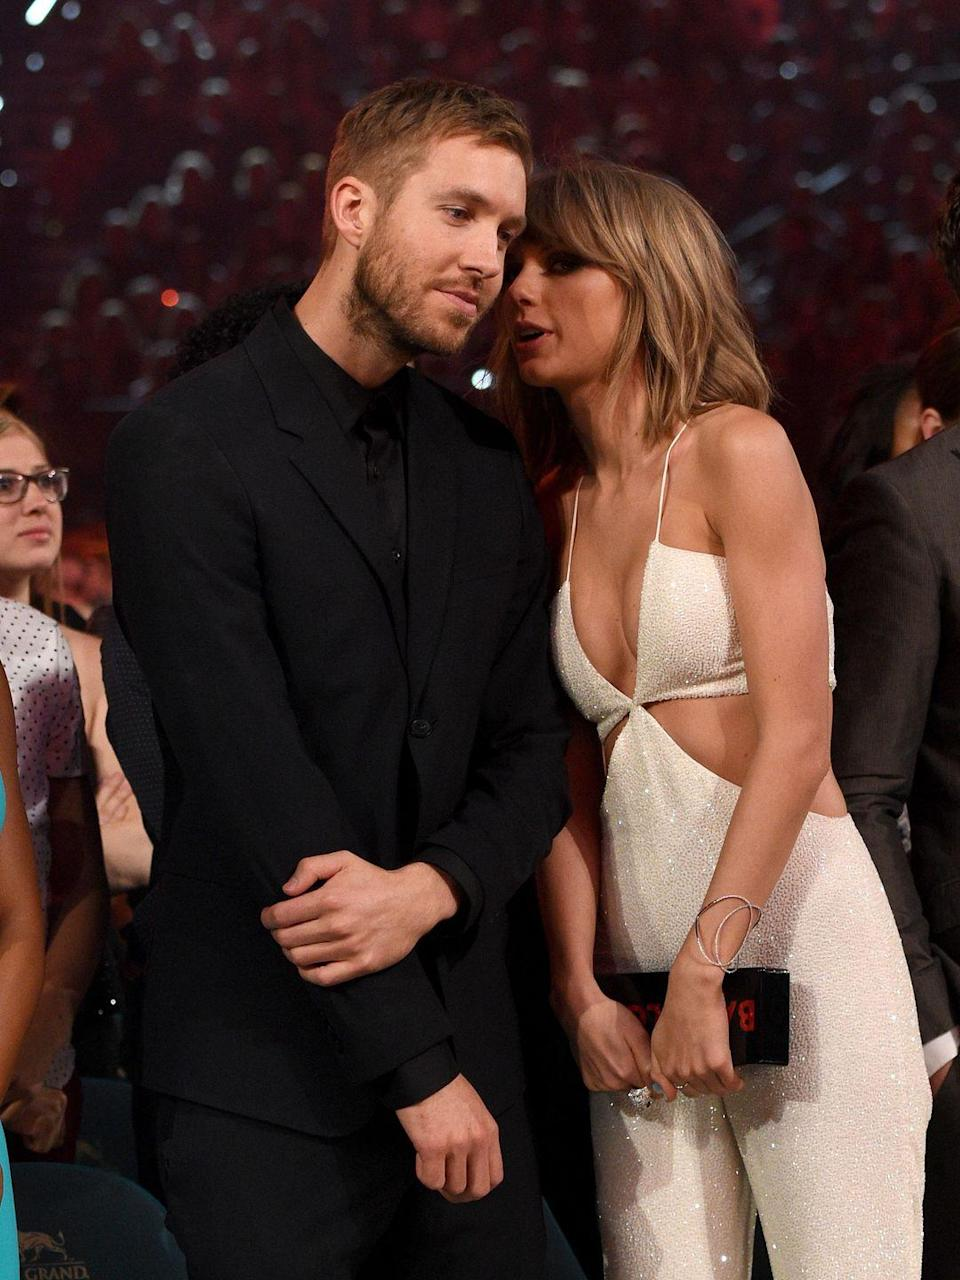 "<p><a href=""https://www.cosmopolitan.com/entertainment/celebs/news/a61295/taylor-swift-calvin-harris-breakup-timeline-tweets/"" rel=""nofollow noopener"" target=""_blank"" data-ylk=""slk:After 15 months of dating"" class=""link rapid-noclick-resp"">After 15 months of dating</a>, Tayvin called it quits and began a war over songwriting credits on ""This Is What You Came For."" <a href=""https://www.cosmopolitan.com/entertainment/celebs/news/a61291/calvin-harris-responds-taylor-swift-songwriting-twitter/"" rel=""nofollow noopener"" target=""_blank"" data-ylk=""slk:In response to Taylor's camp publicly confirming that she used the pseudonym Nils Sjoberg to write the song"" class=""link rapid-noclick-resp"">In response to Taylor's camp publicly confirming that she used the pseudonym Nils Sjoberg to write the song</a>, Calvin wrote (via a series of tweets that have since been deleted), ""Please focus on the positive aspects of YOUR life because you've earned a great one… I know you're off on tour and you need someone new to try and bury like Katy ETC but I'm not that guy, sorry. I won't allow it."" He also referenced Taylor's new relationship at the time with Tom Hiddleston: ""I figure if you're happy in your new relationship you should focus on that instead of trying to tear your ex bf down for something to do."" </p>"